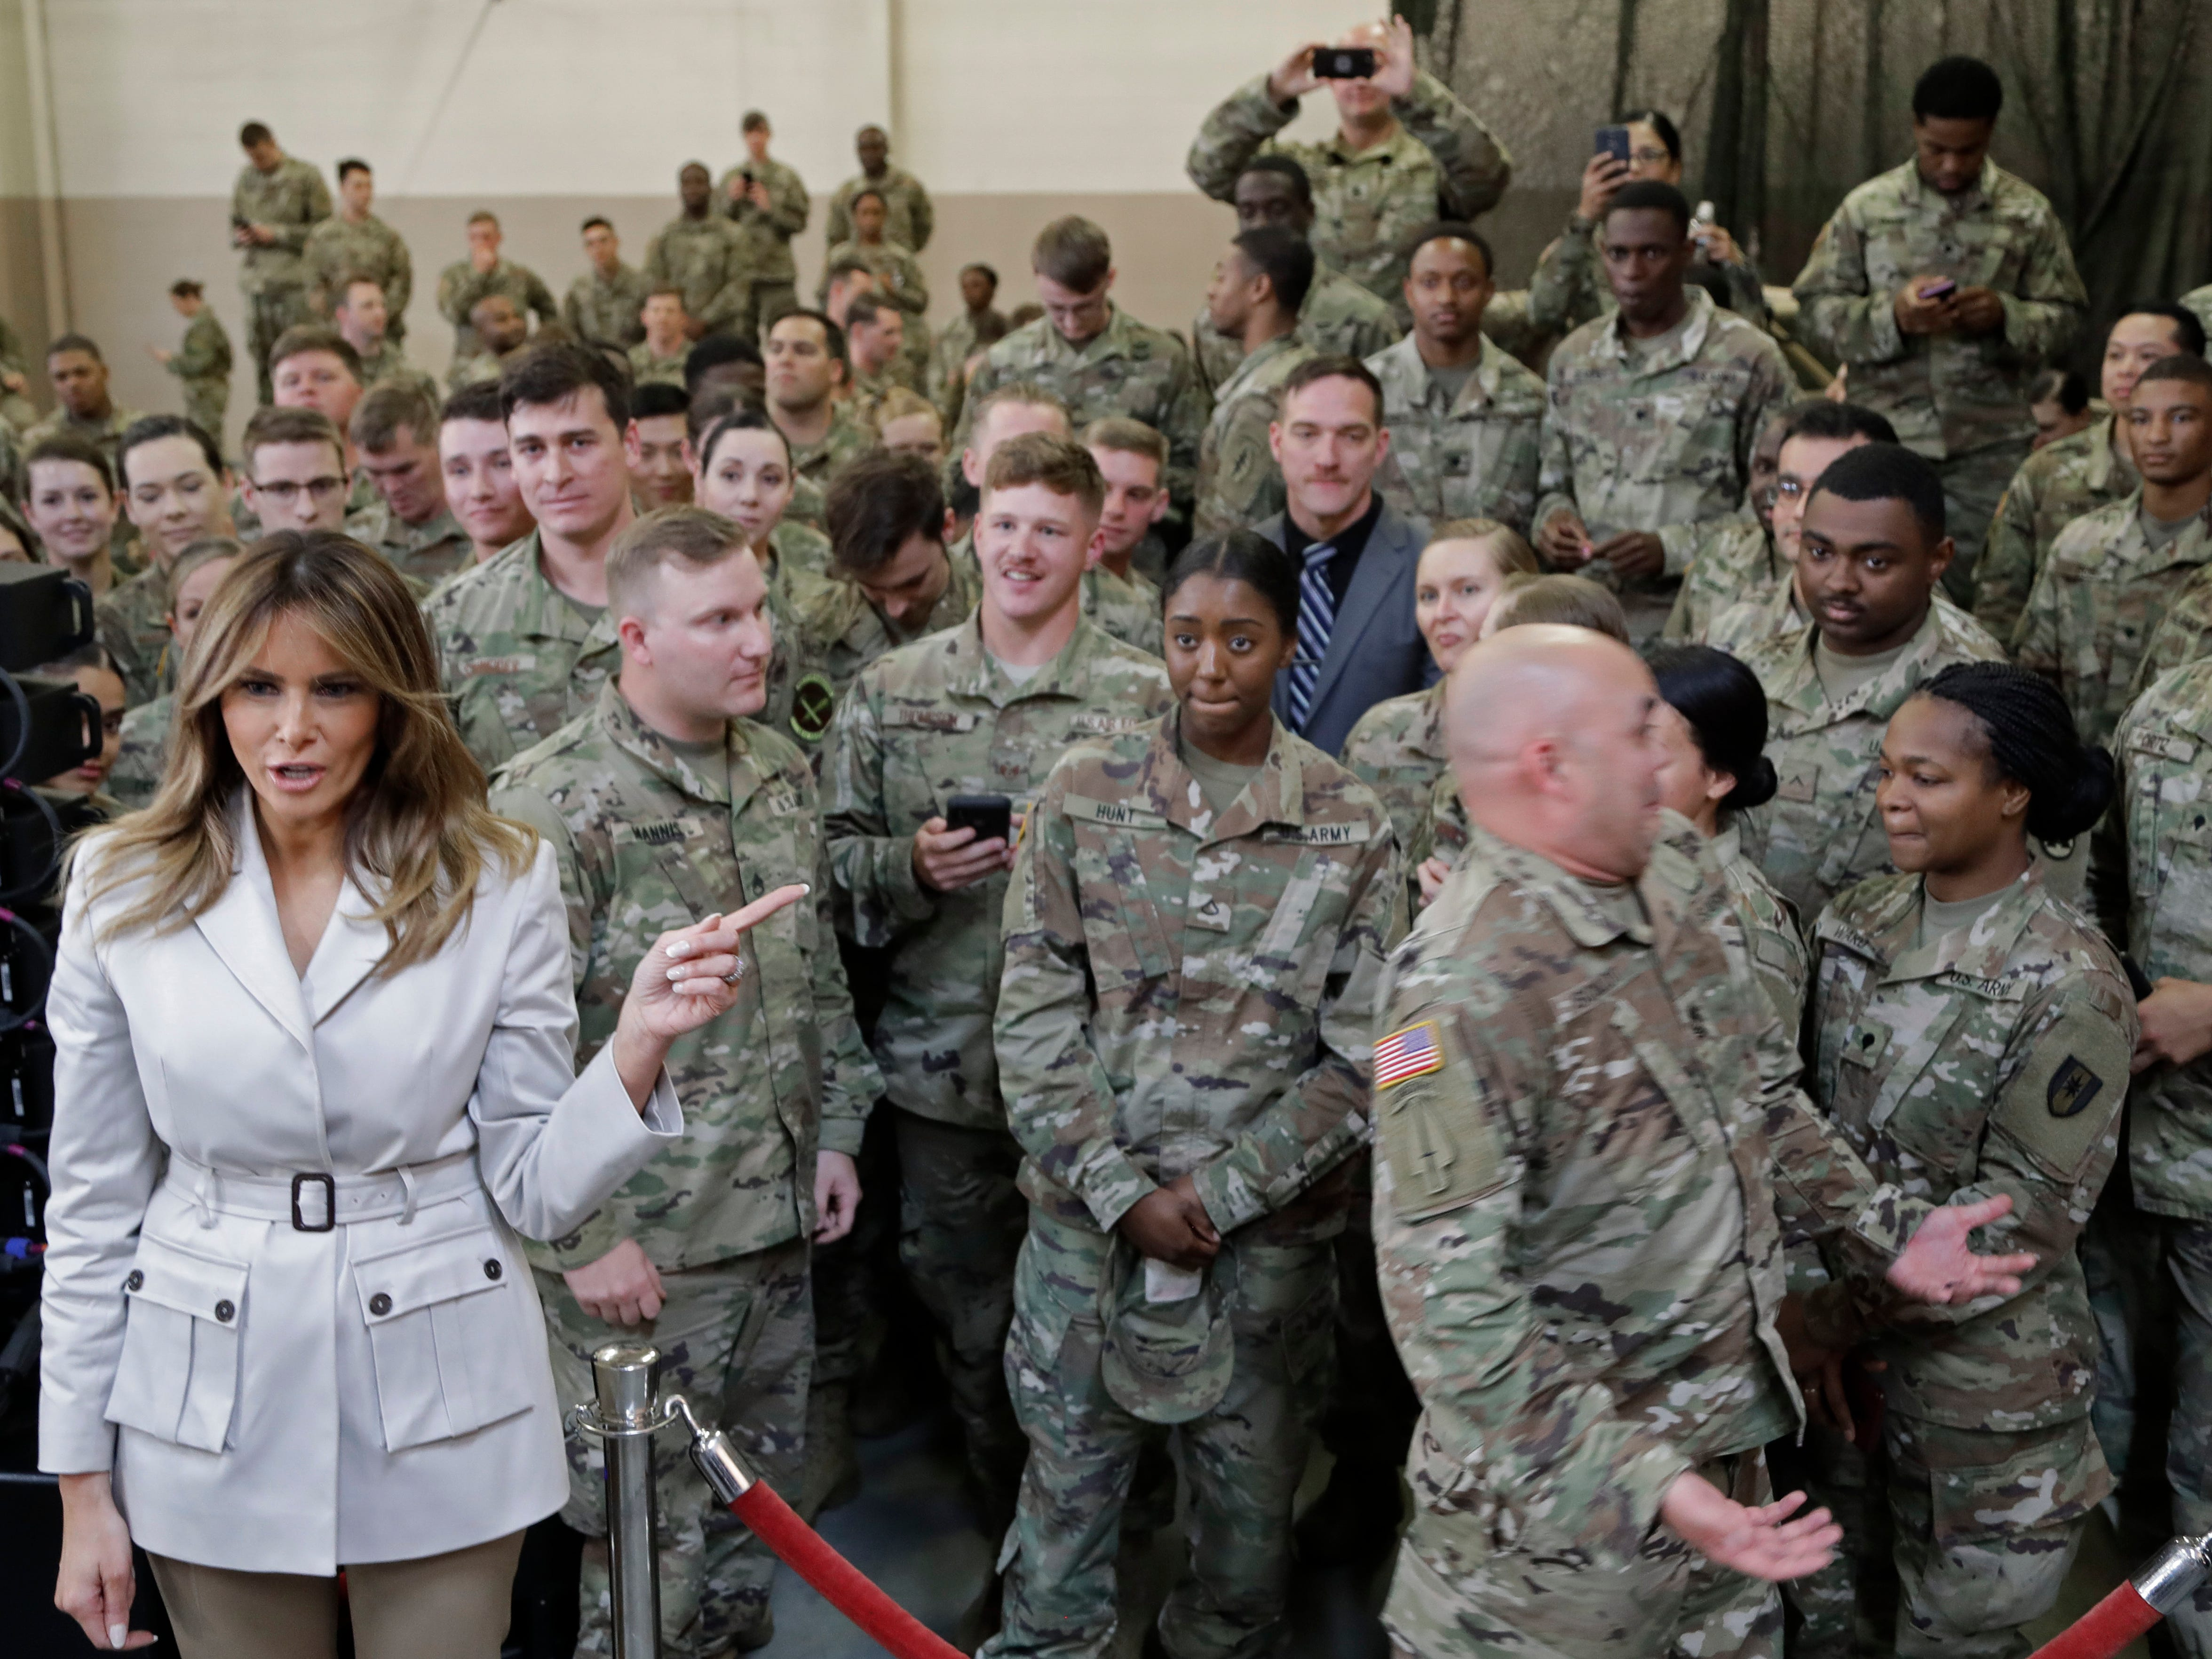 First lady Melania Trump points to a soldier who she was photographed with after addressing service personnel and family members in Ft. Bragg, N.C., Monday, April 15, 2019.